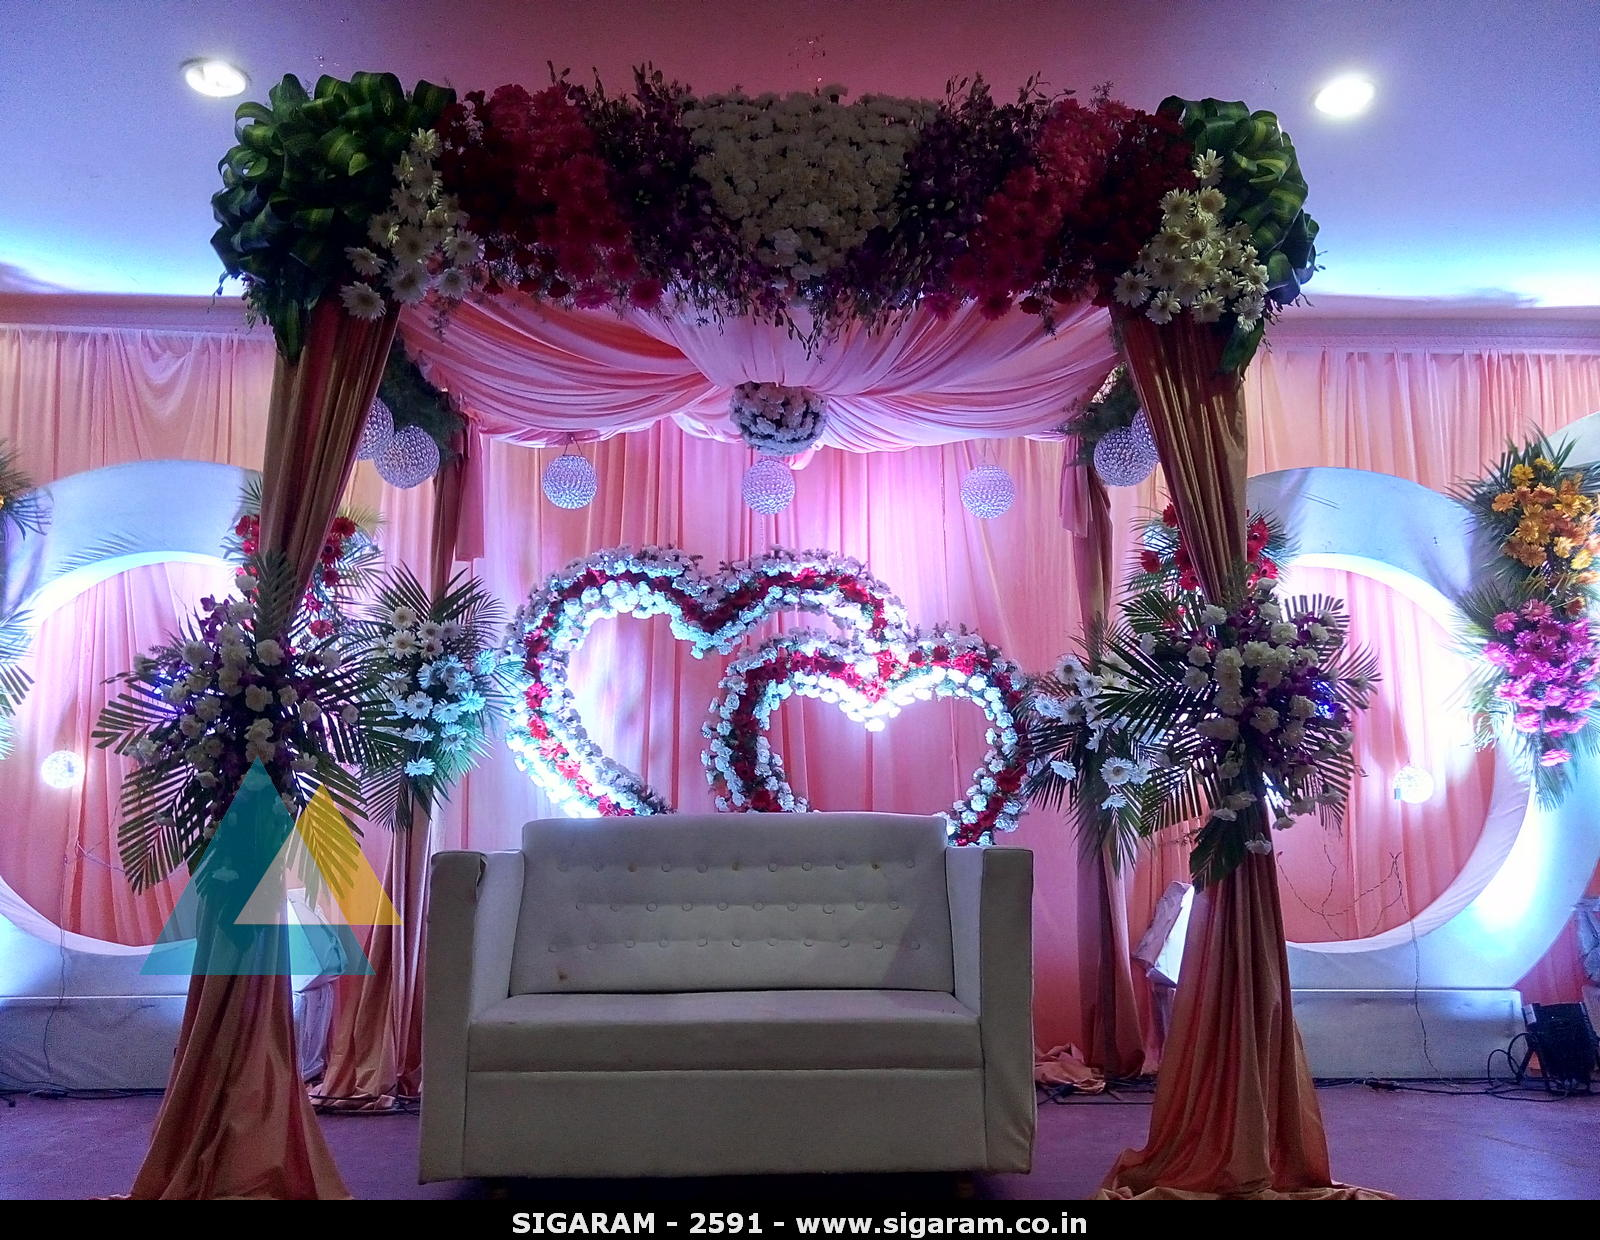 Wedding reception decoration at subalakshmi thirumana mahal wedding reception decoration at subalakshmi thirumana mahal cuddalore junglespirit Choice Image